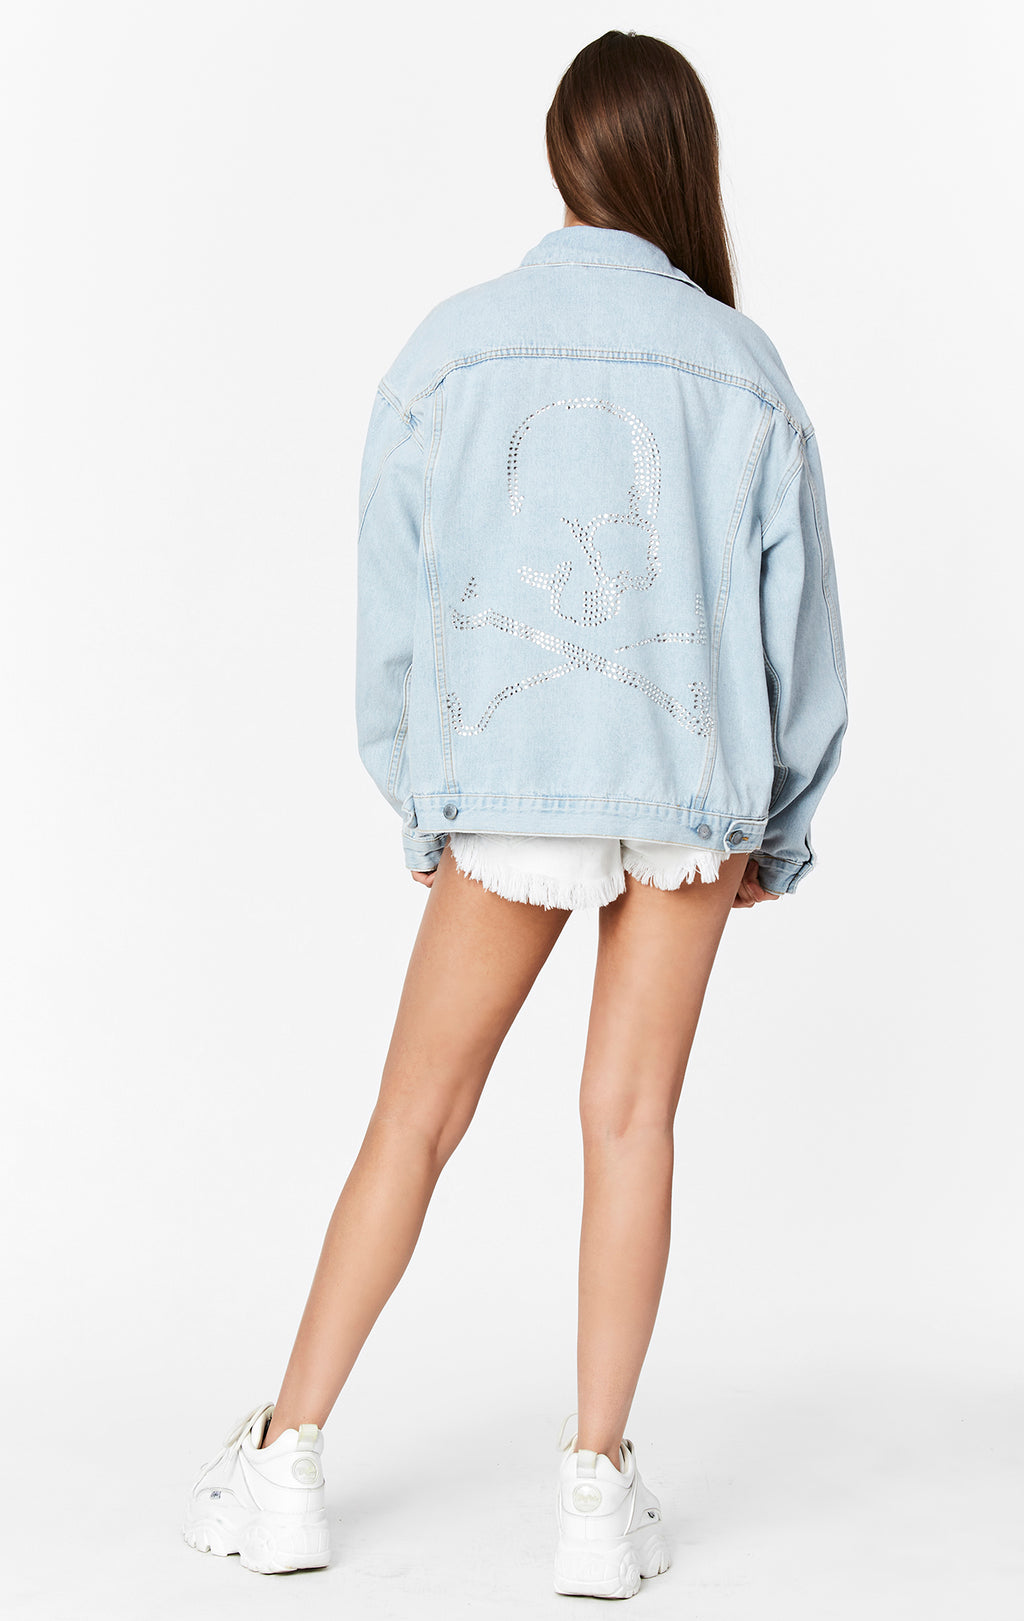 RHINESTONE SKULL AUDREY OVERSIZED DENIM JACKET